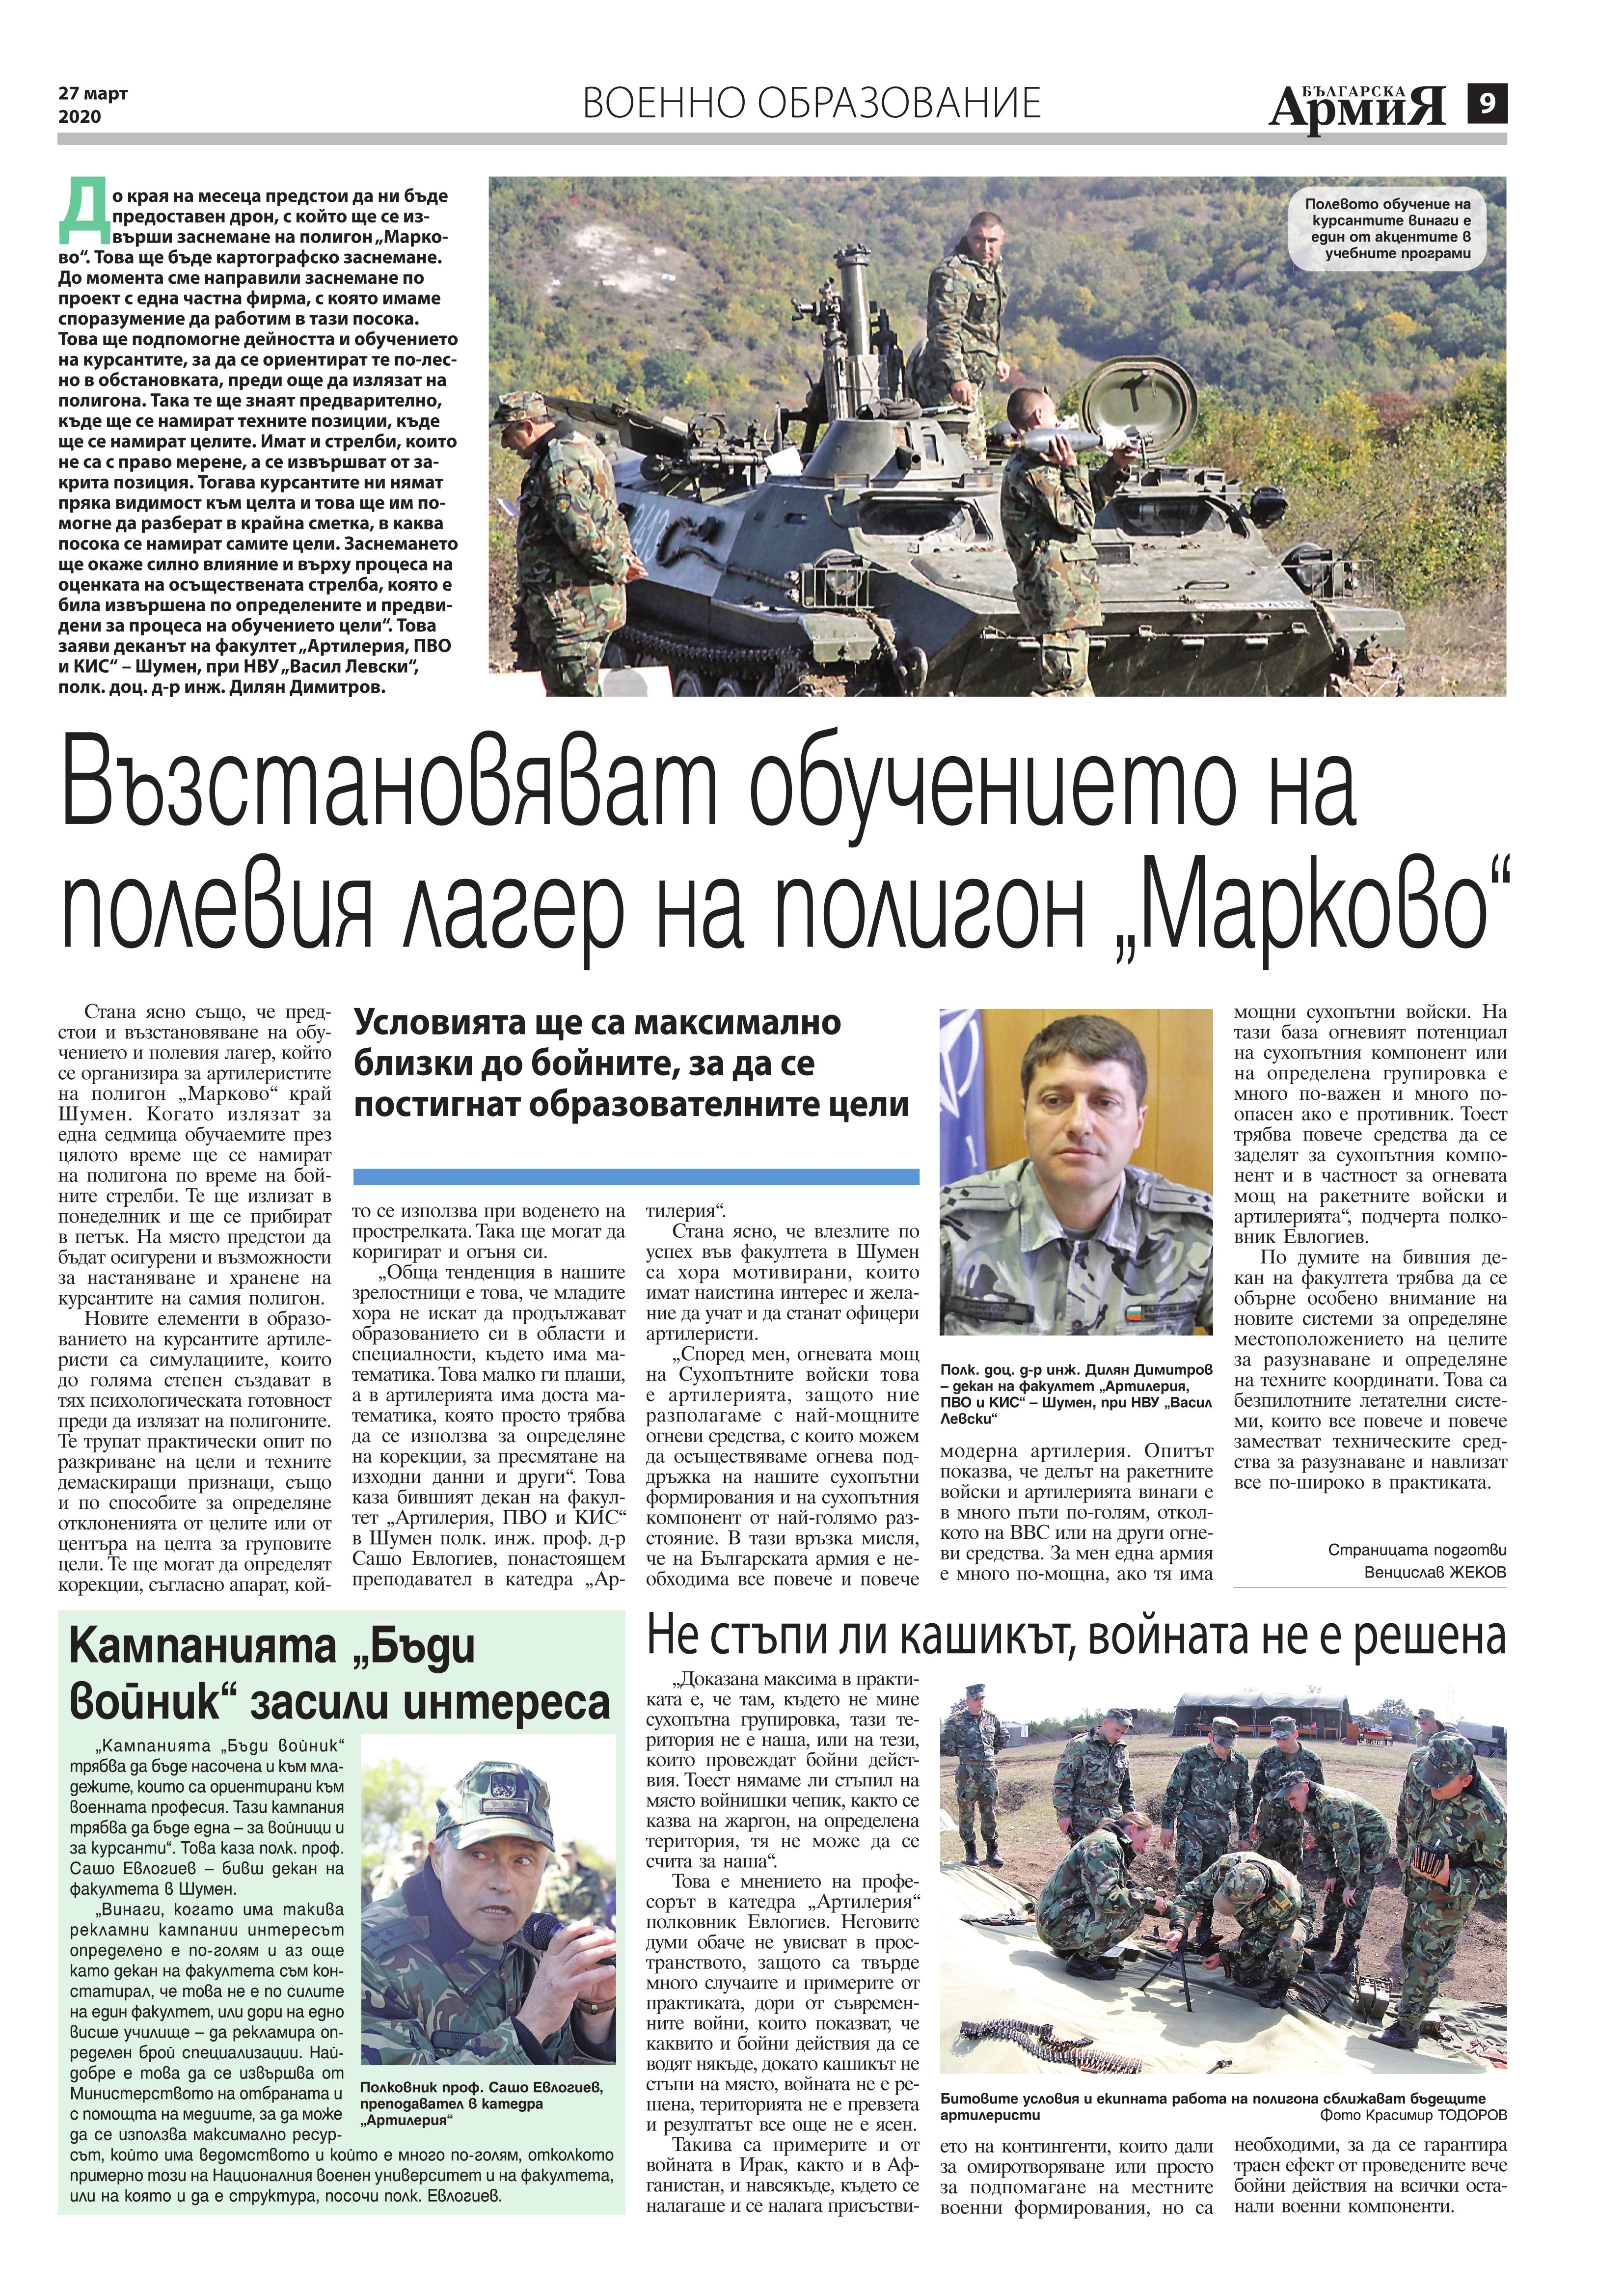 https://www.armymedia.bg/wp-content/uploads/2015/06/09.page1_-130.jpg